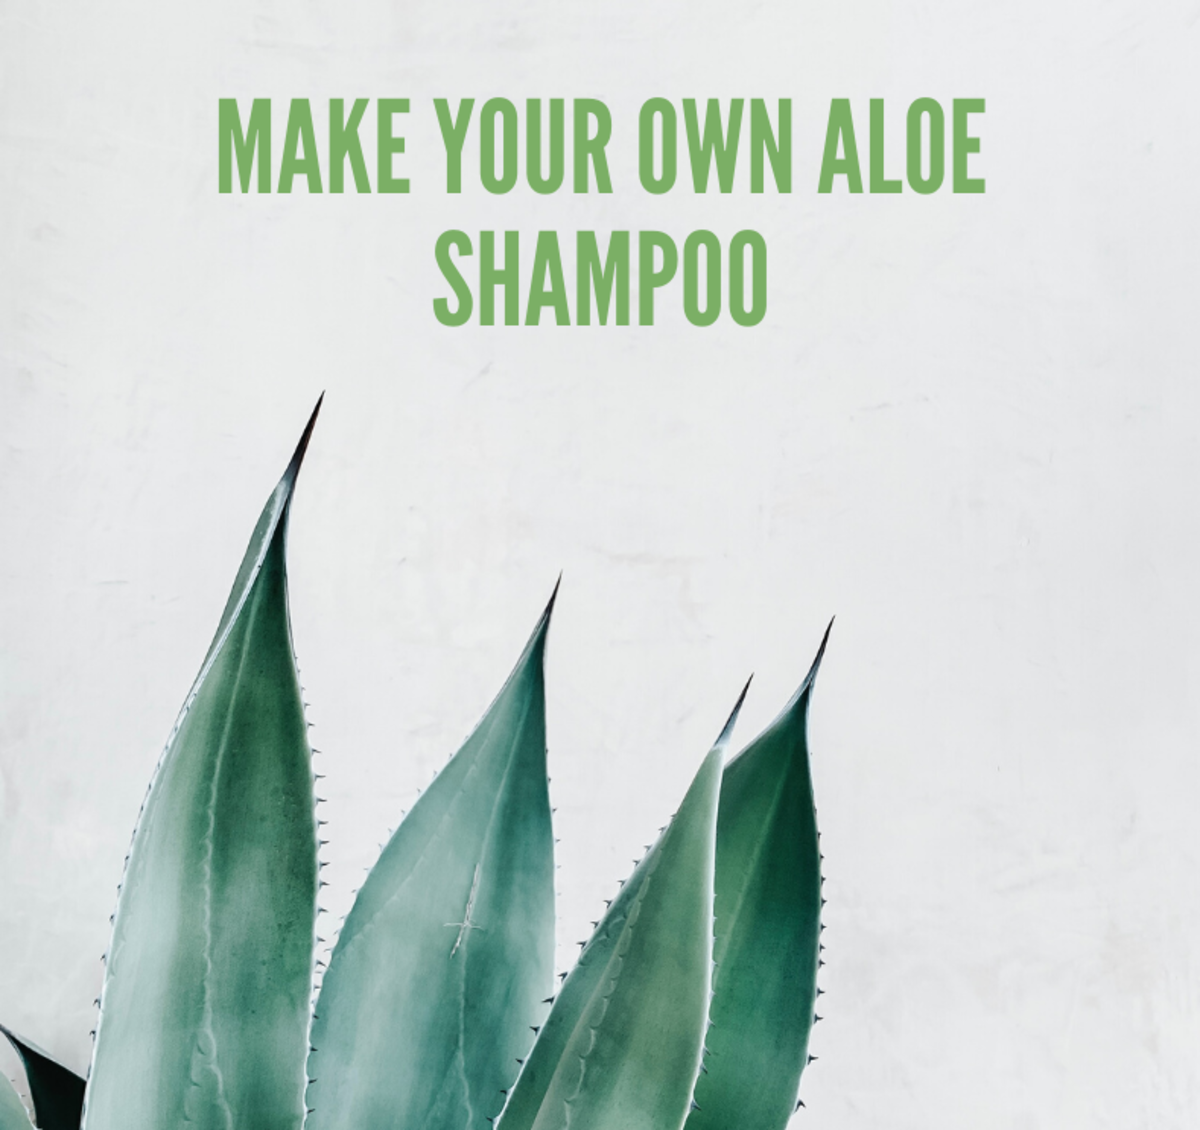 Aloe deep-cleans the hair and scalp. Learn how to make your own to keep your hair healthy.